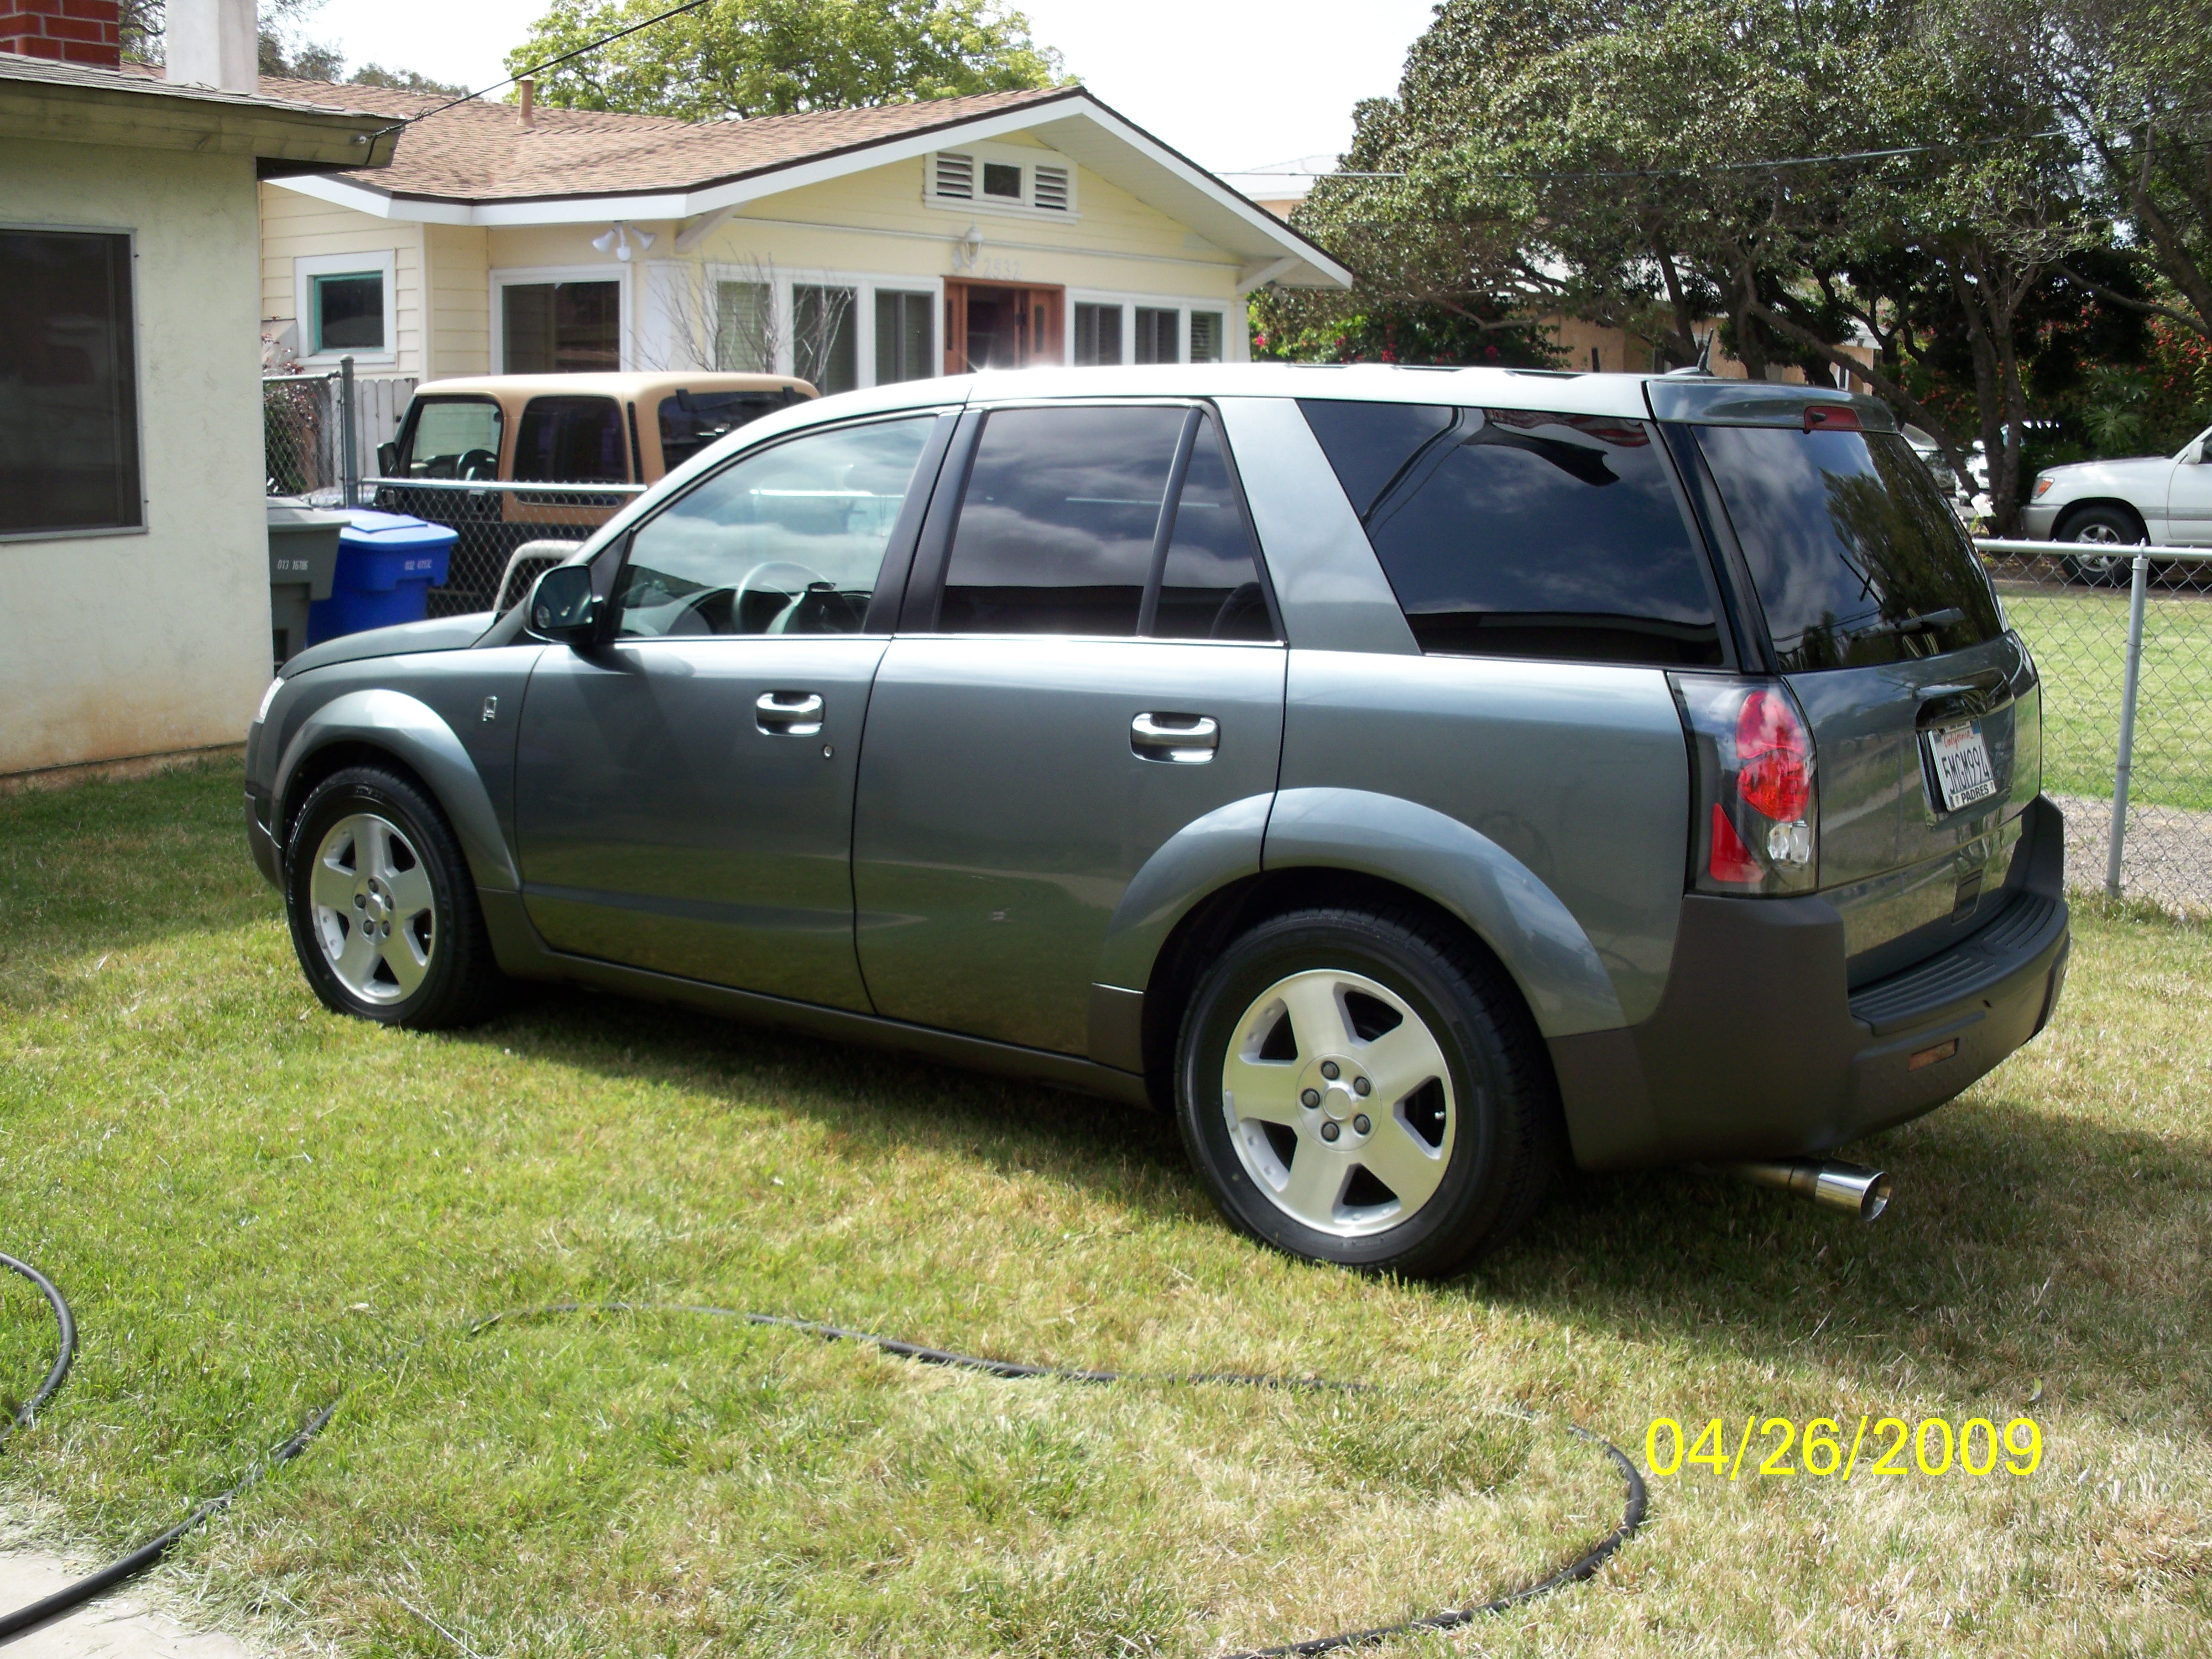 Tony 2005 Saturn VUE